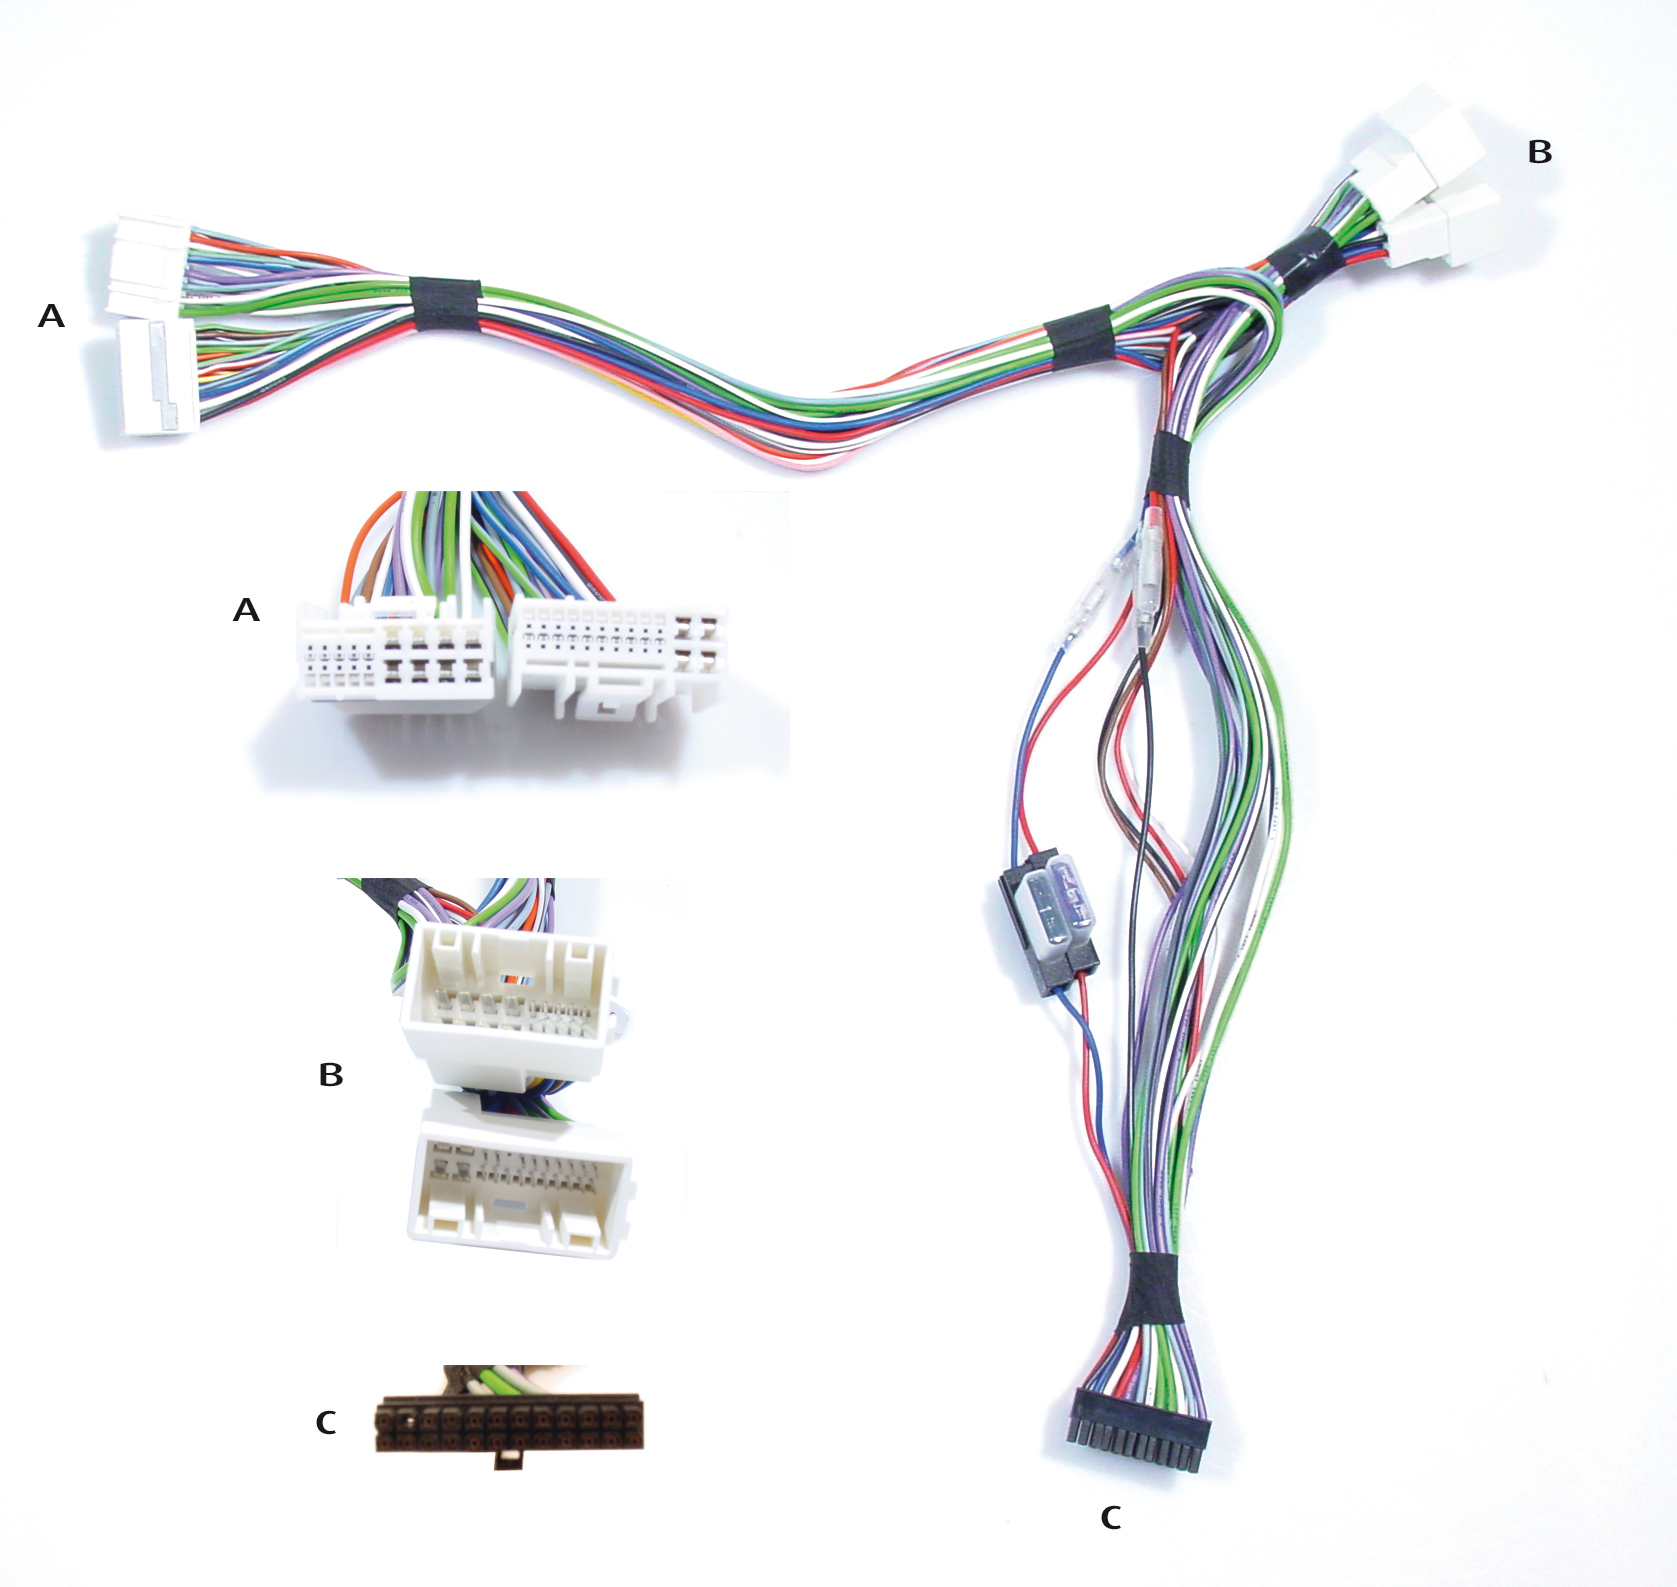 volkswagen battery wiring diagram with Display Item on Vw Golf Mk4 Parts Diagram furthermore Wiring Diagram Coil Ignition in addition T13954482 2004 passat front air bag sensor additionally 2000 Jetta Vr6 Fuse Box Diagram besides Display item.